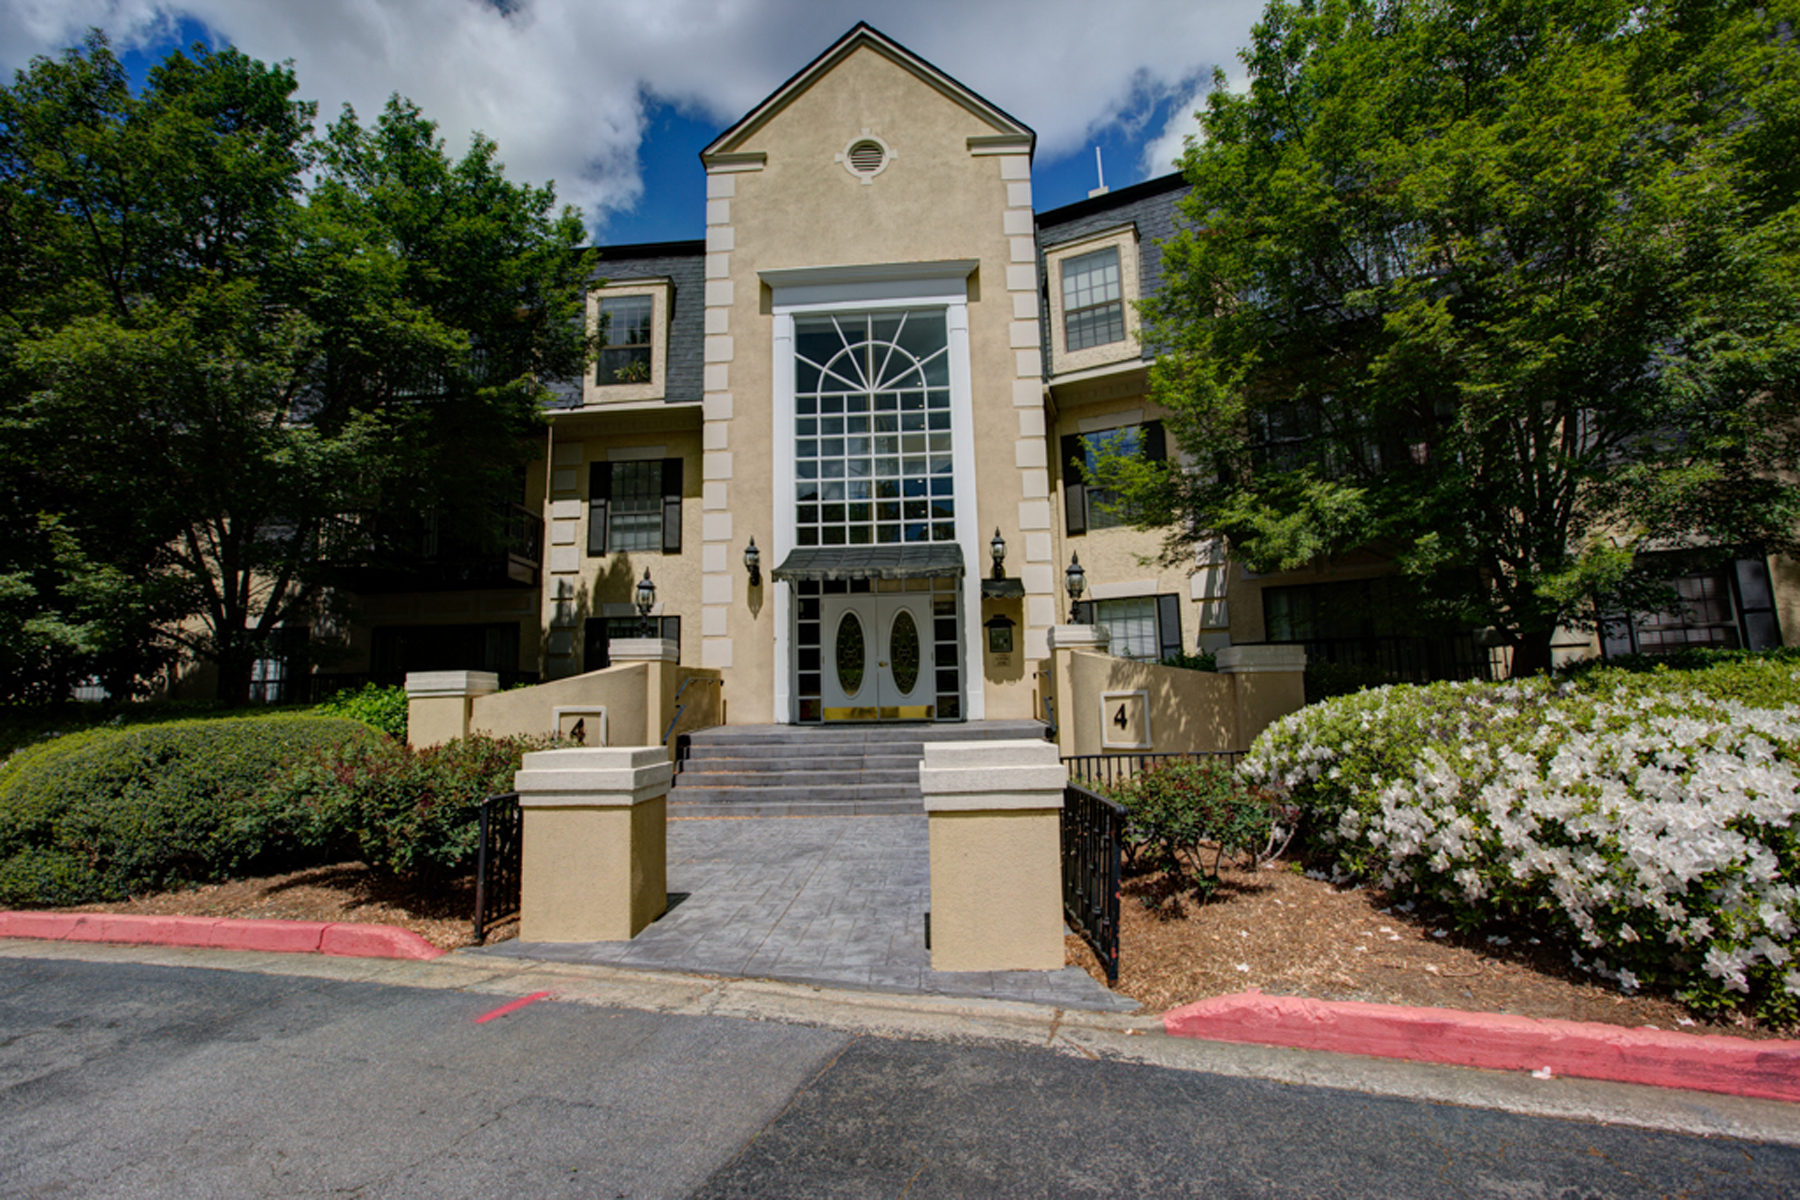 Condominium for Sale at Renovated Two Bedroom, Two Bathroom Condo 4214 Pine Heights Drive NE #214 Atlanta, Georgia, 30324 United States